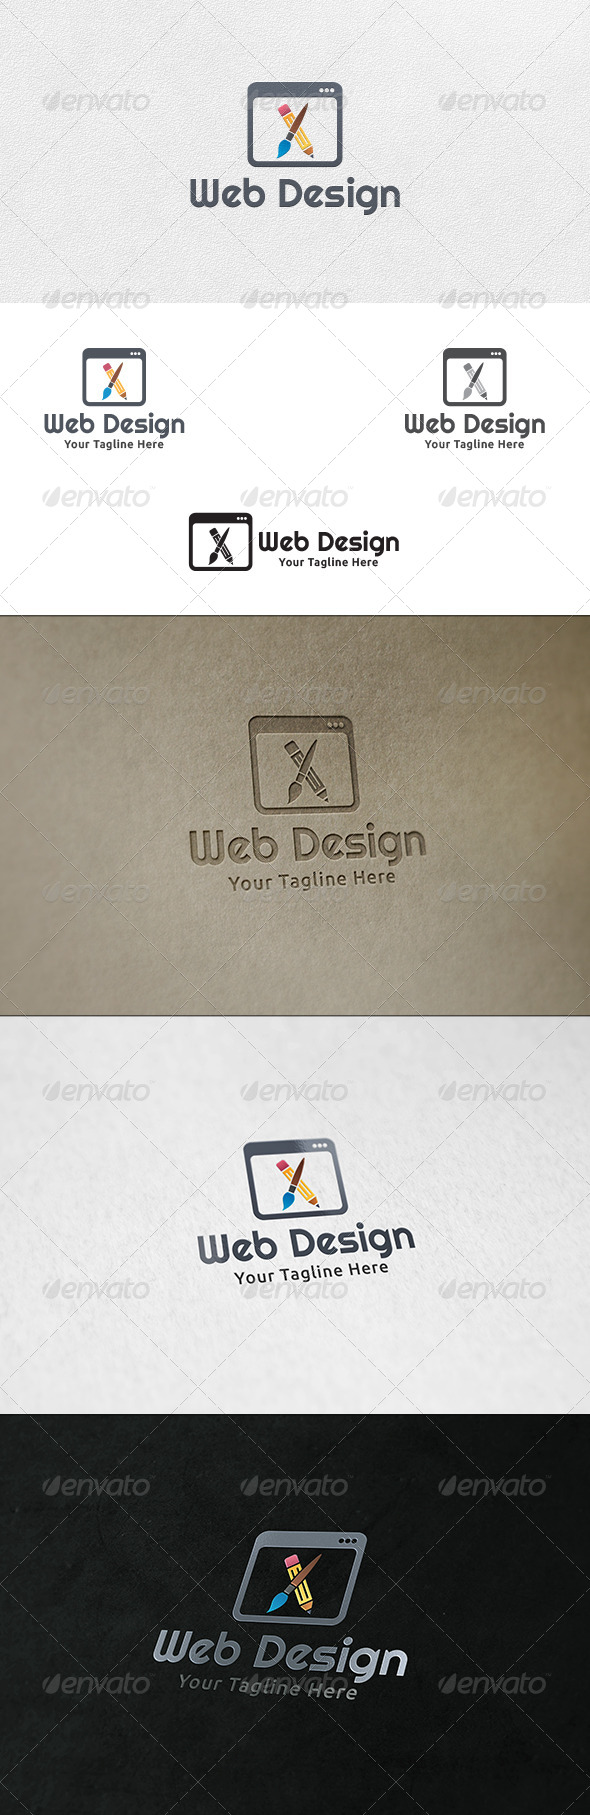 Web Designing - Logo Template - Objects Logo Templates